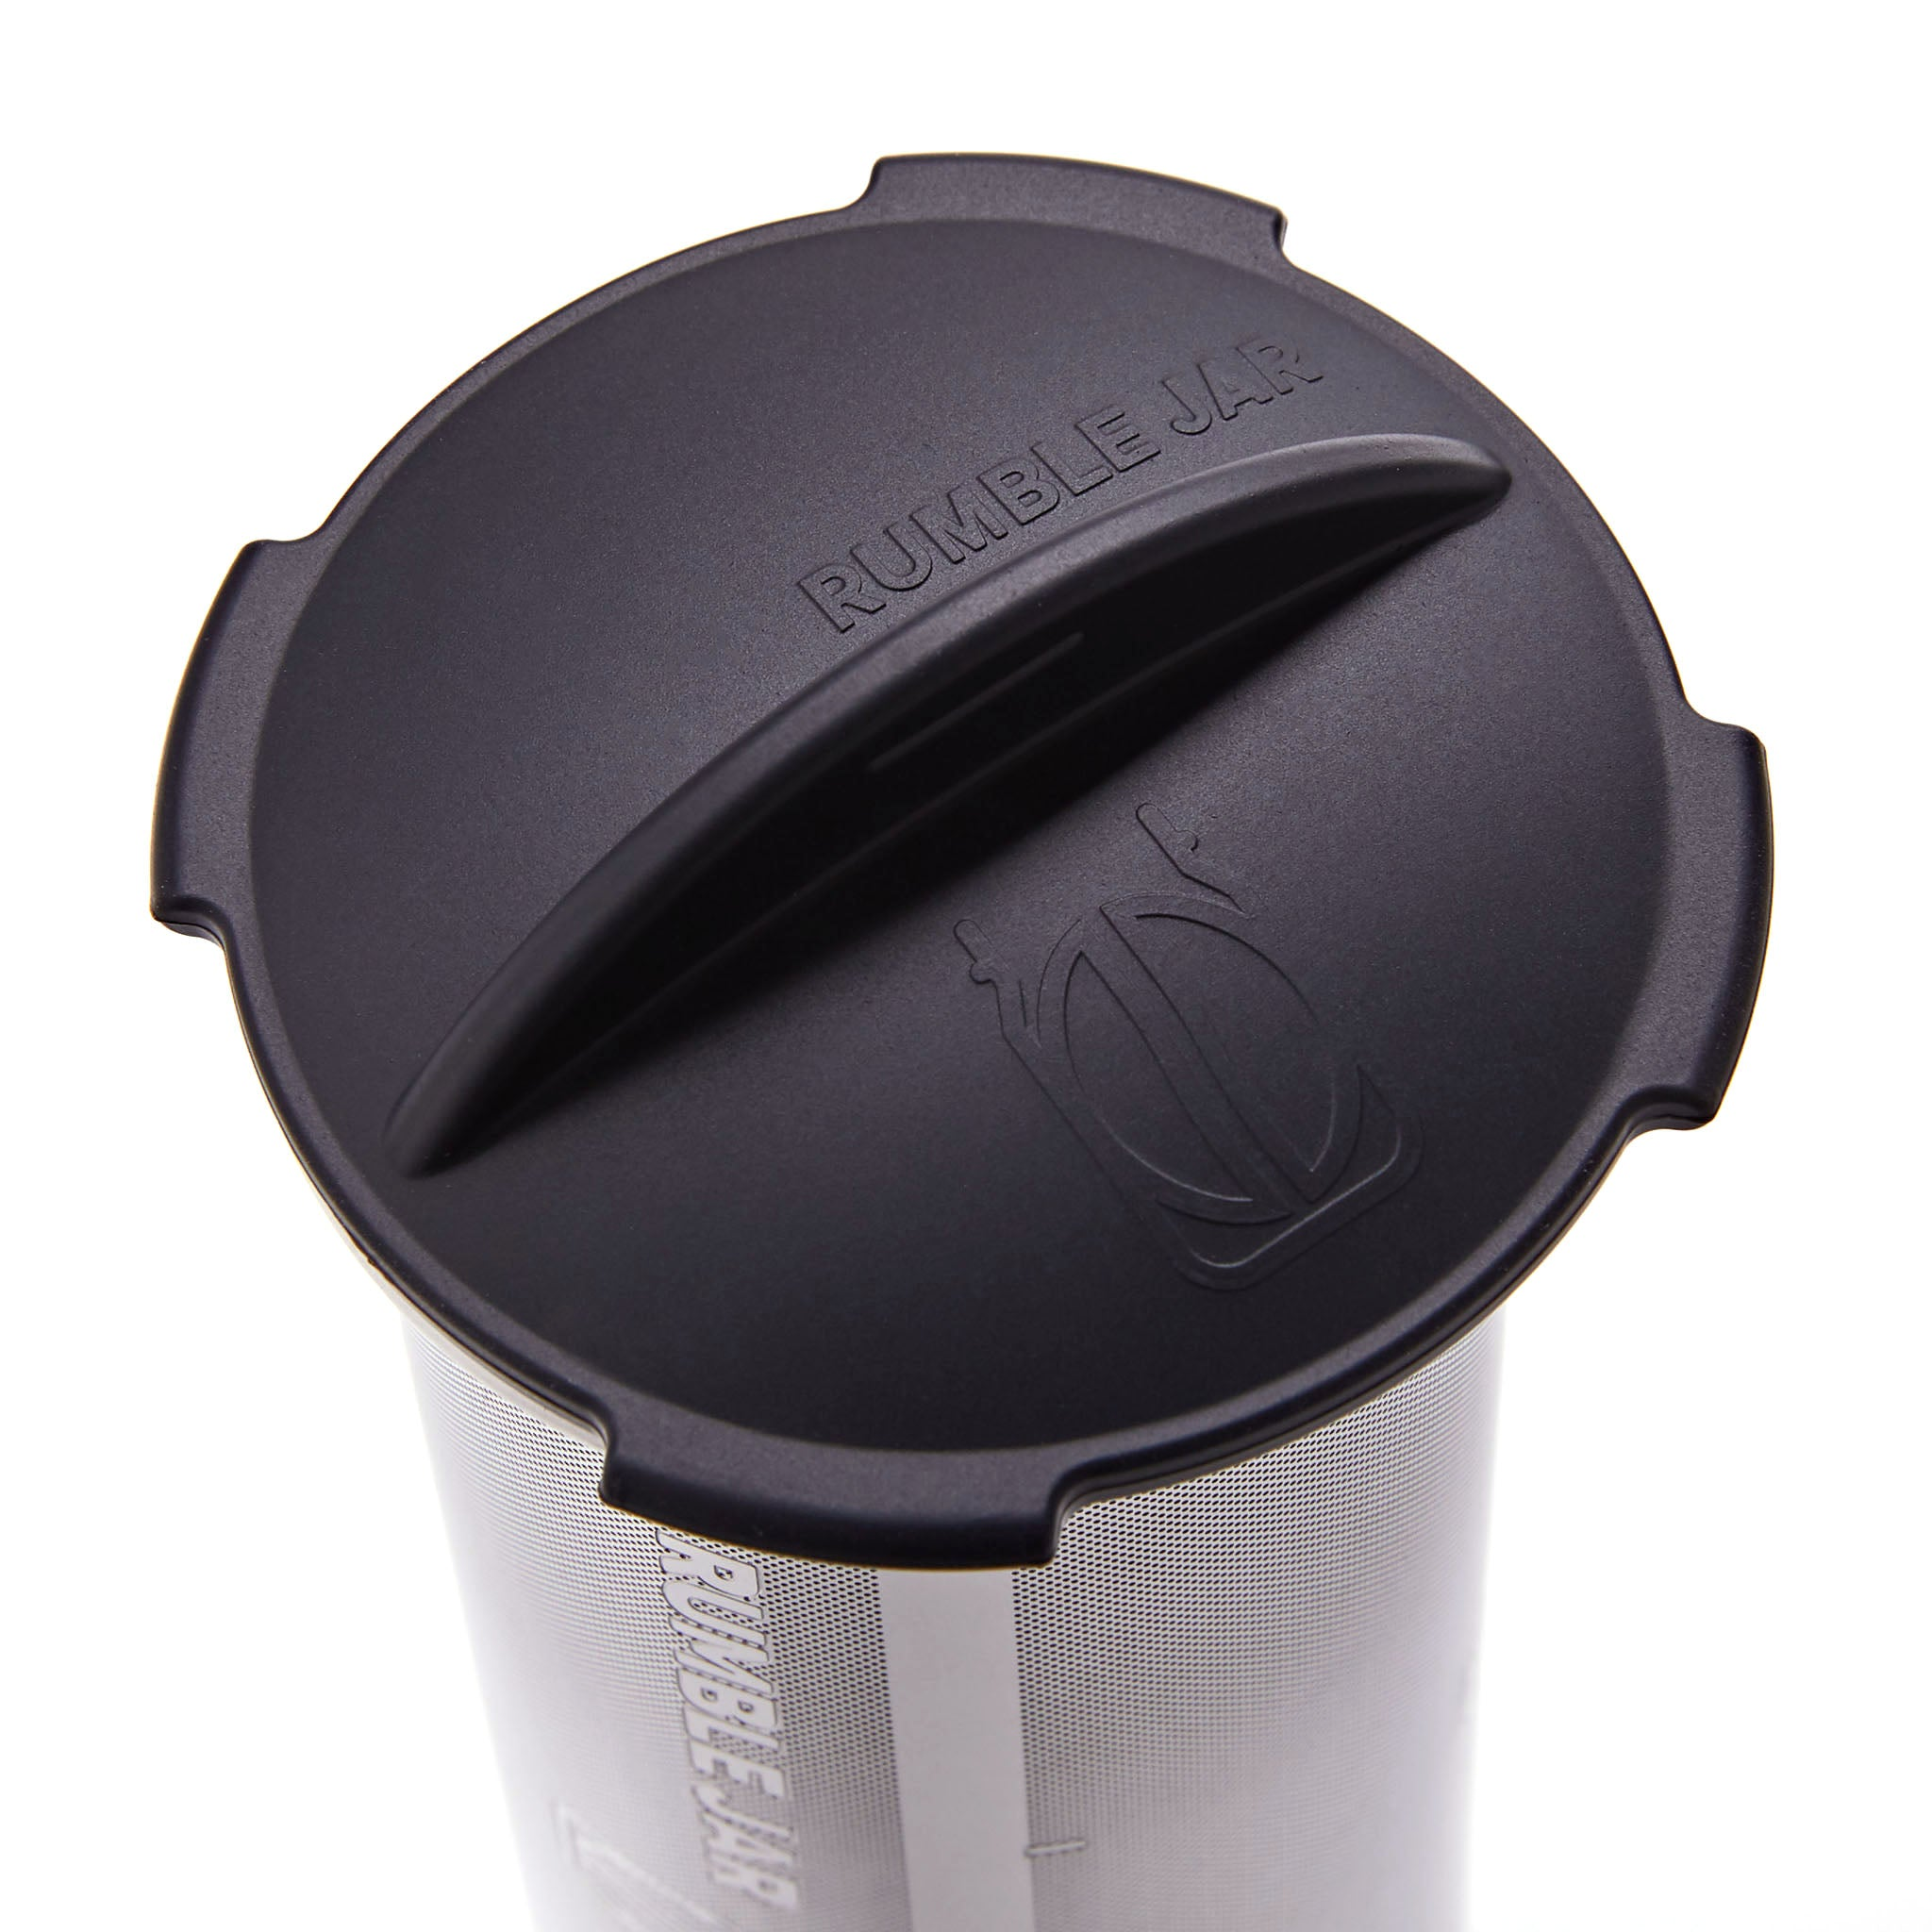 Rumble Jar's silicone cap in Dark Black